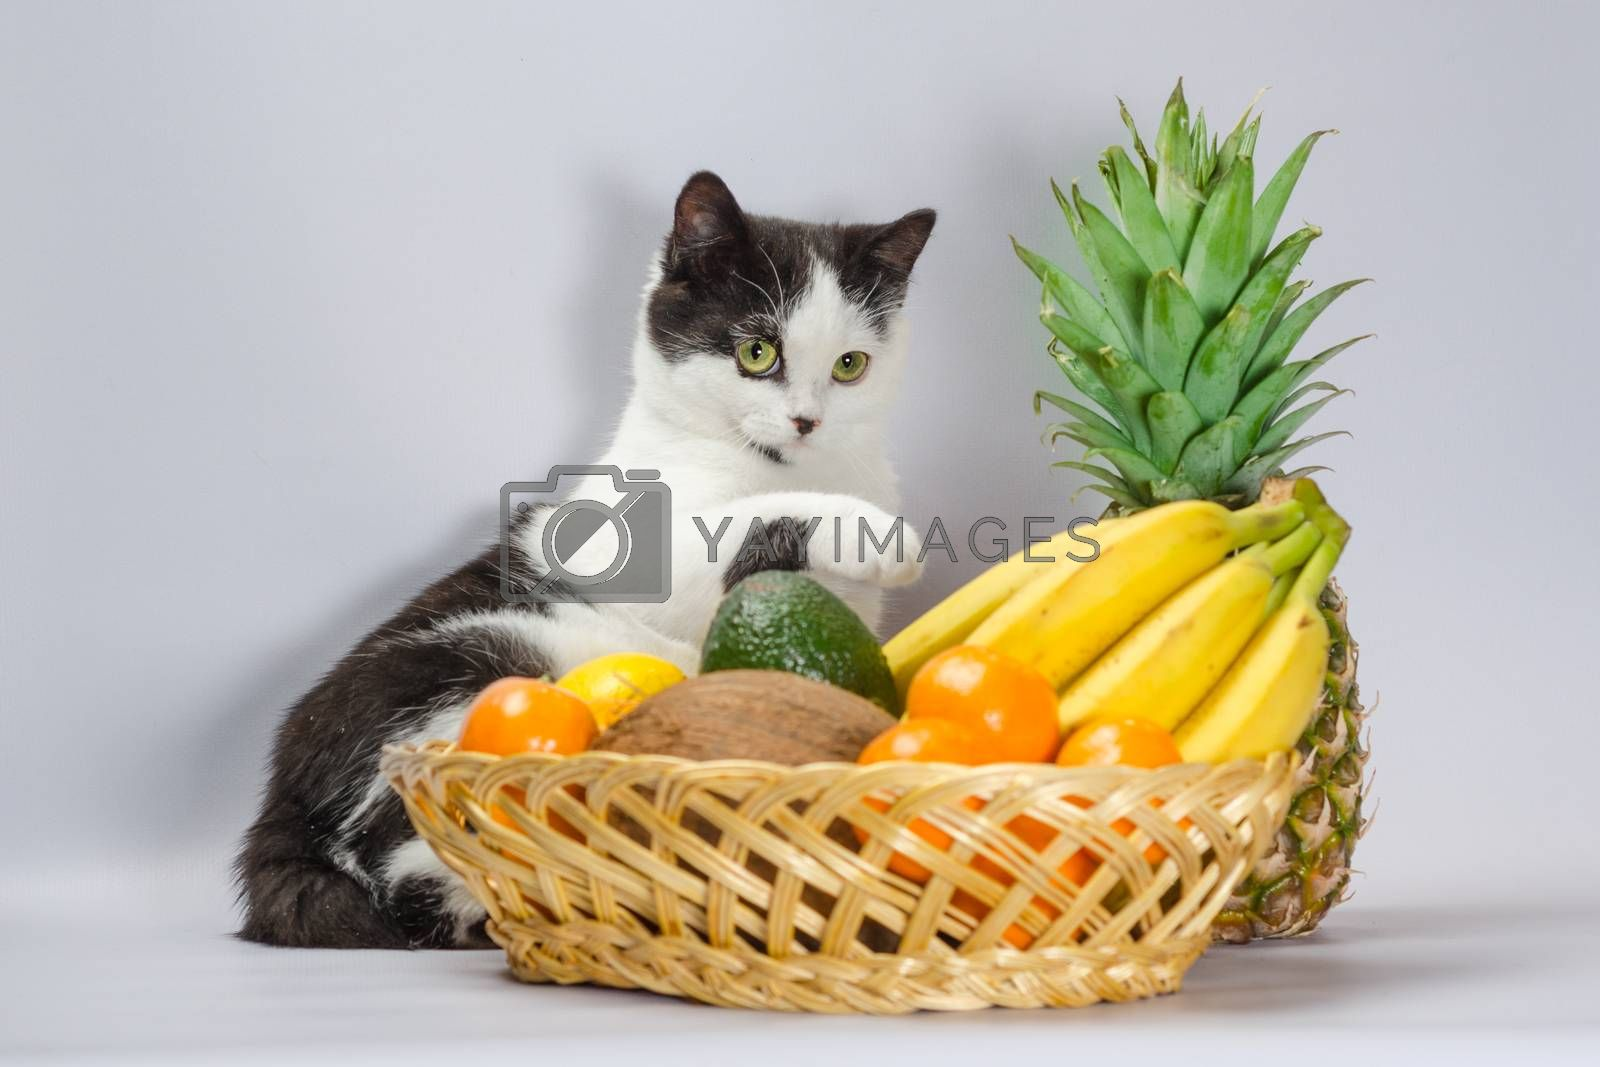 black and white cat raised a paw over a basket of tropical fruits